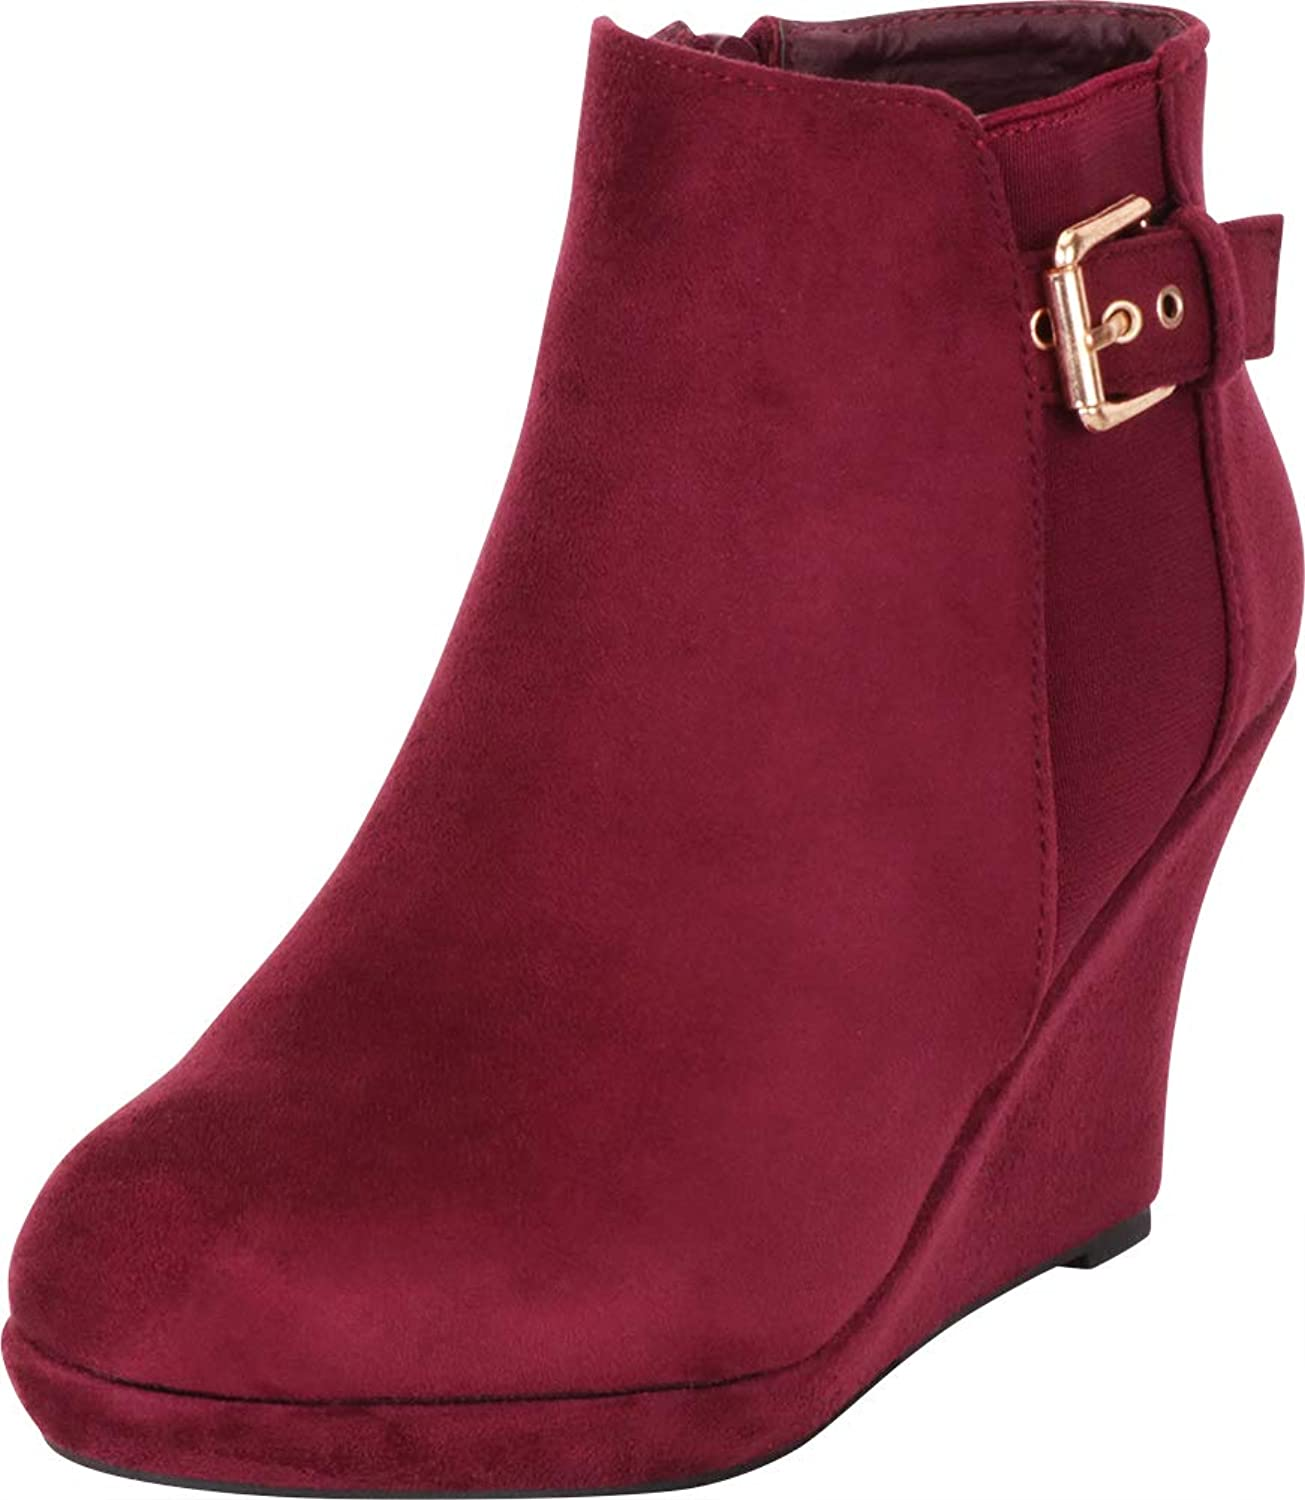 Cambridge Select Women's Round Toe Stretch Buckle Chunky Platform Wedge Ankle Bootie